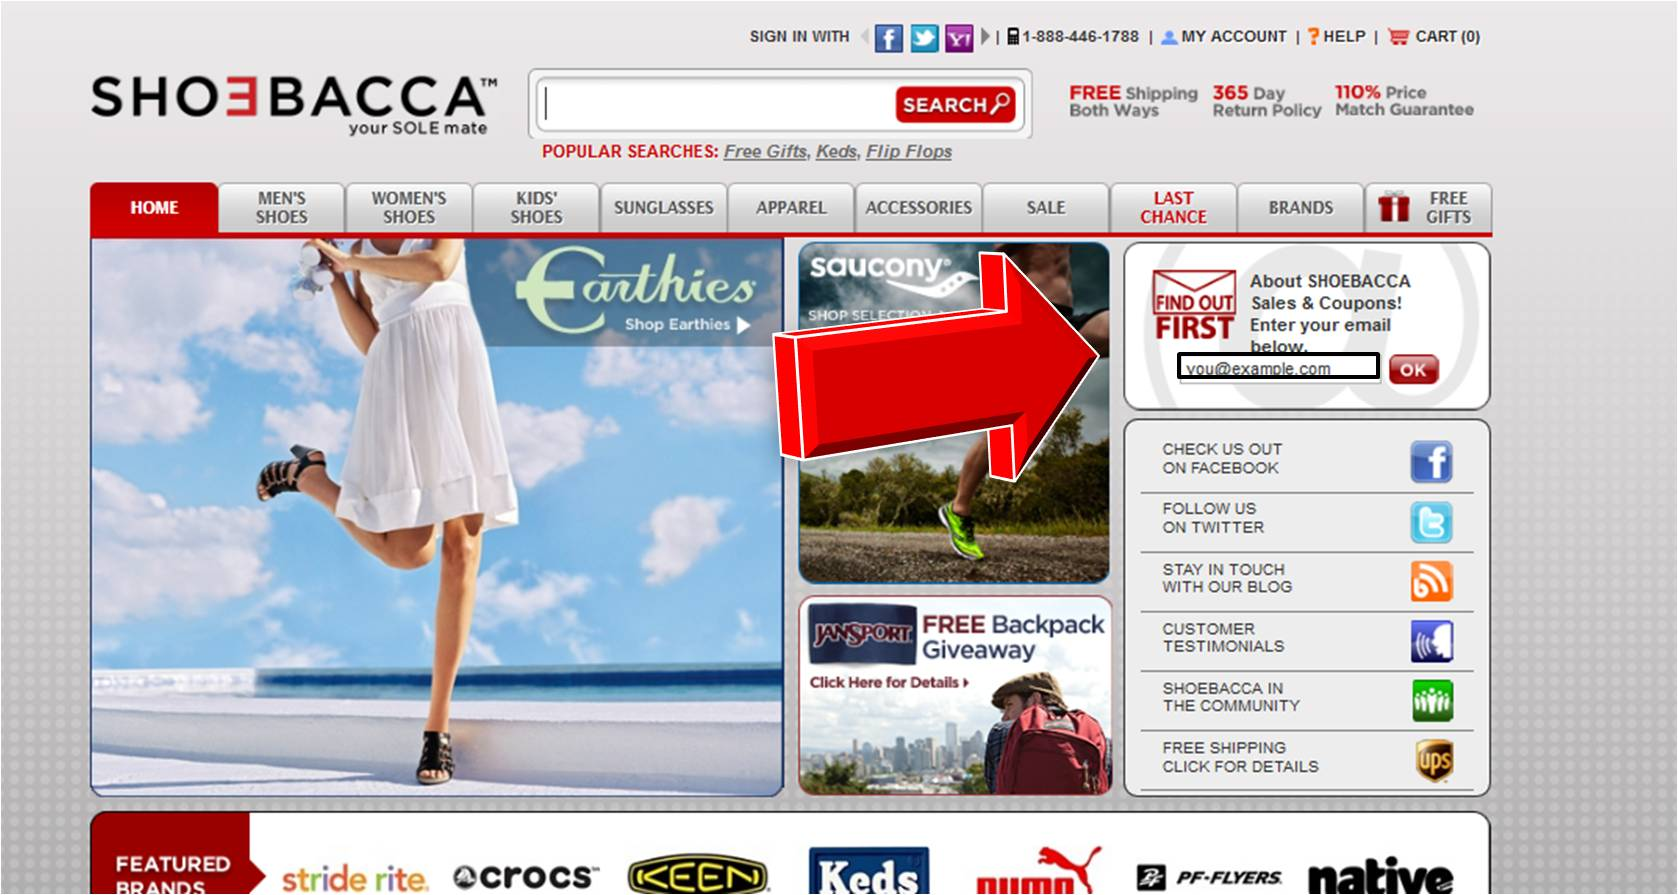 SHOEBACCA Coupon Codes, Promos & Sales